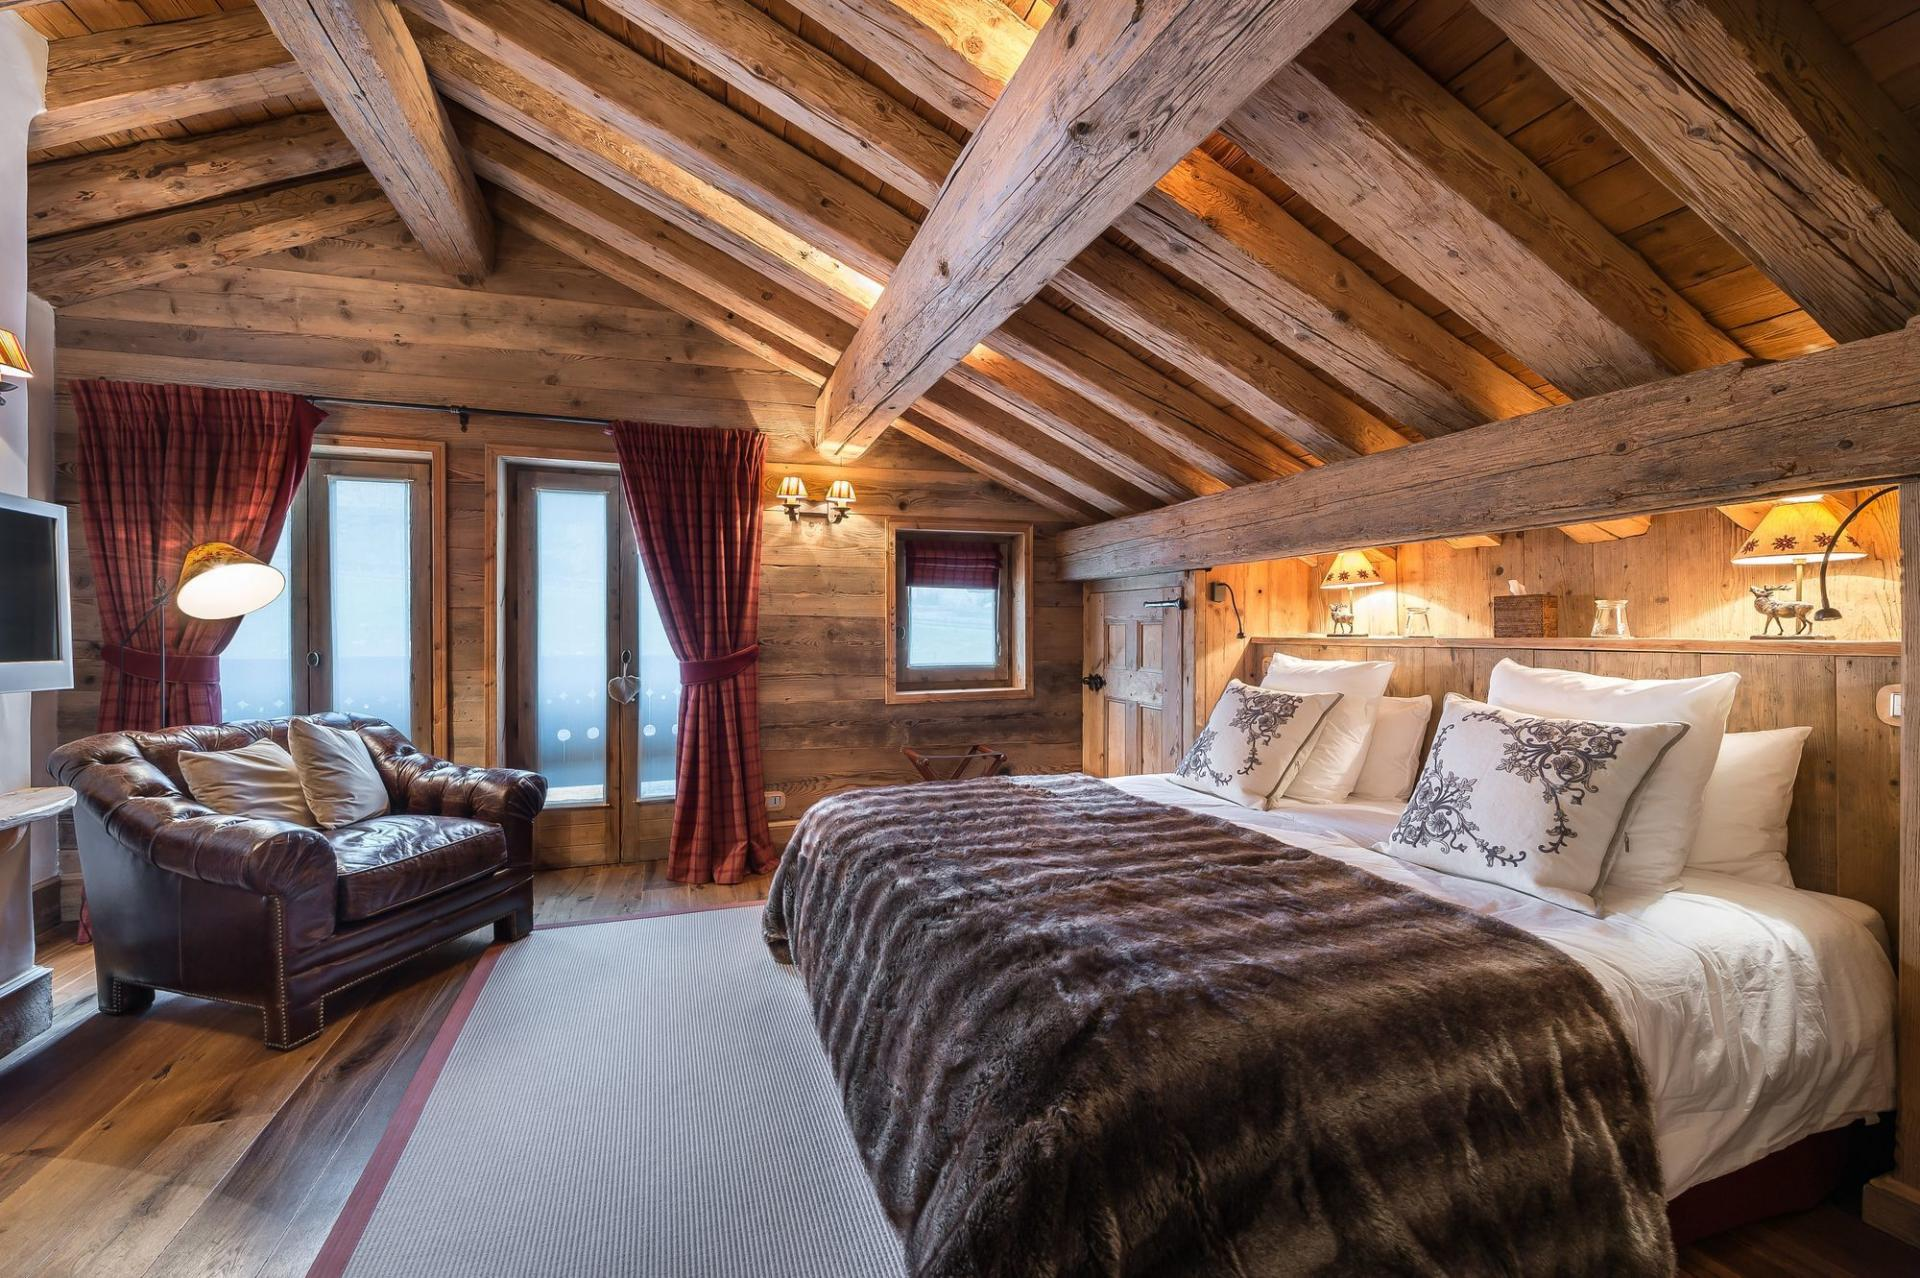 ANOTHER GUEST BEDROOM IN CHALET BELLECOTE